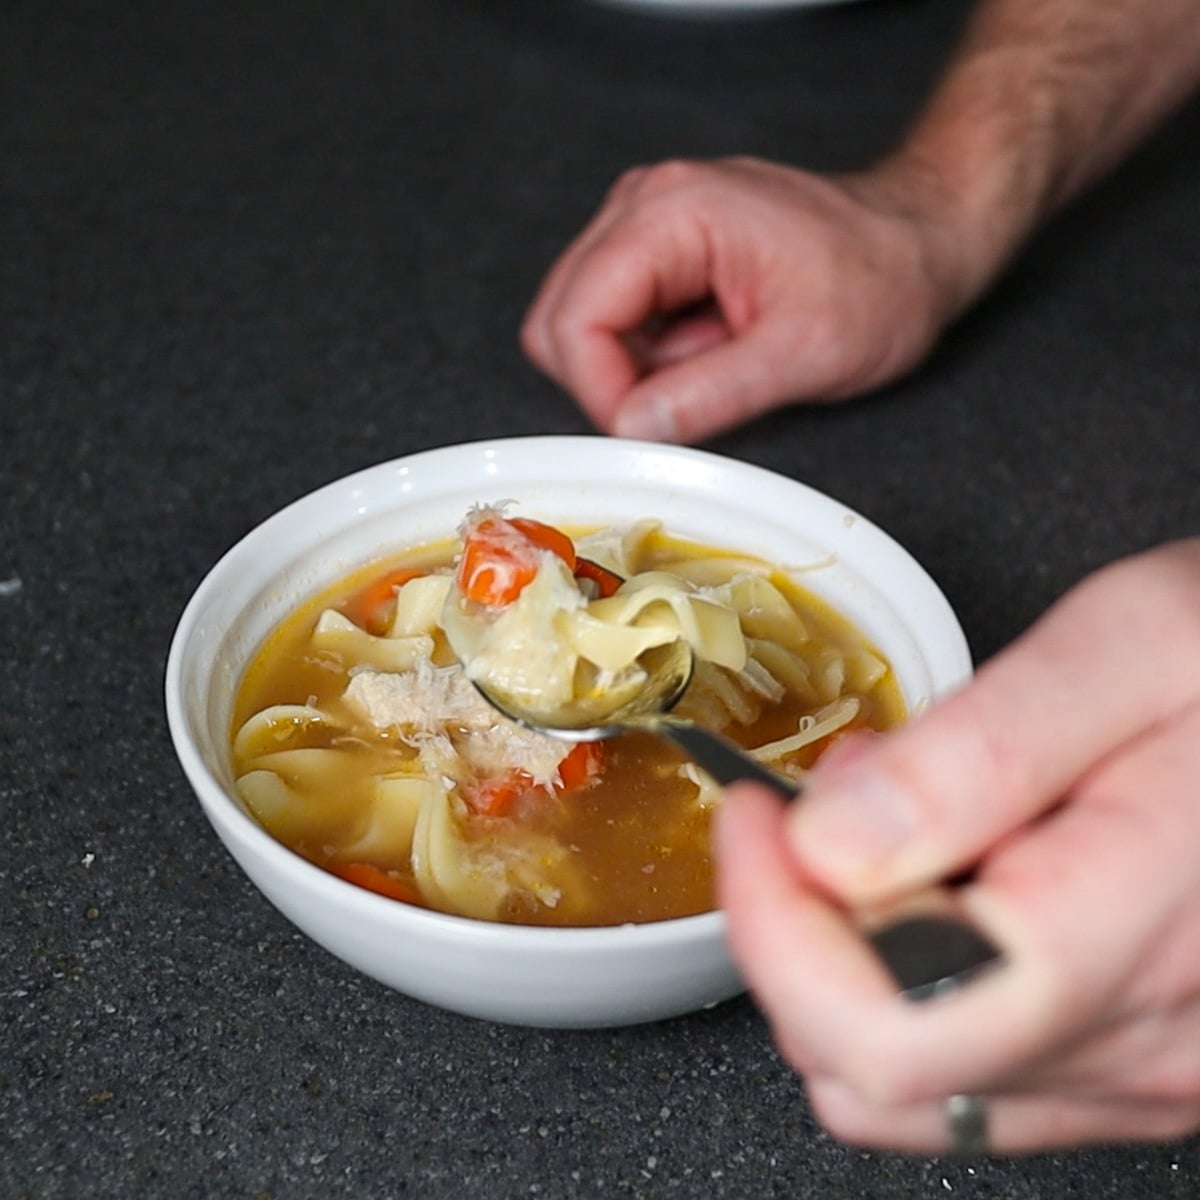 souped served in a bowl